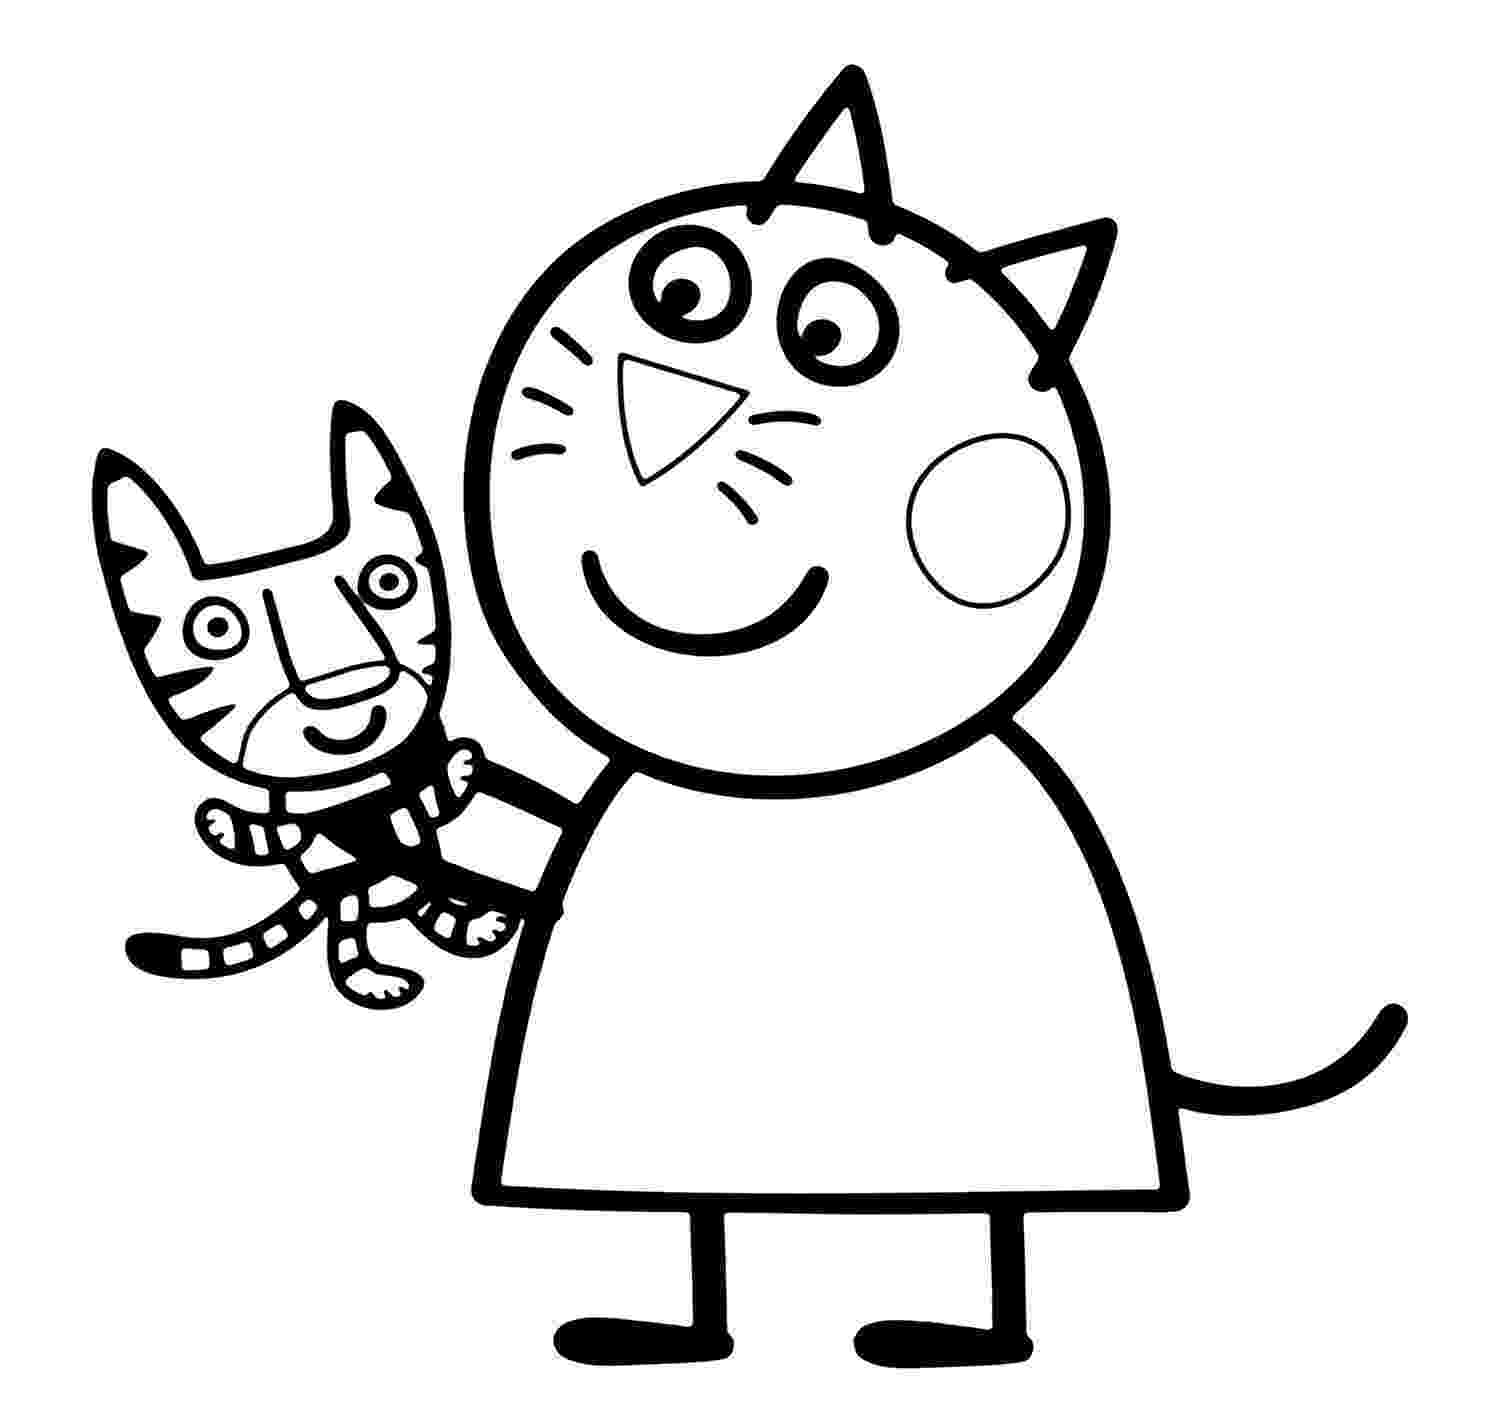 peppa pig colouring pages online kids n funcom 20 coloring pages of peppa pig pig online peppa pages colouring